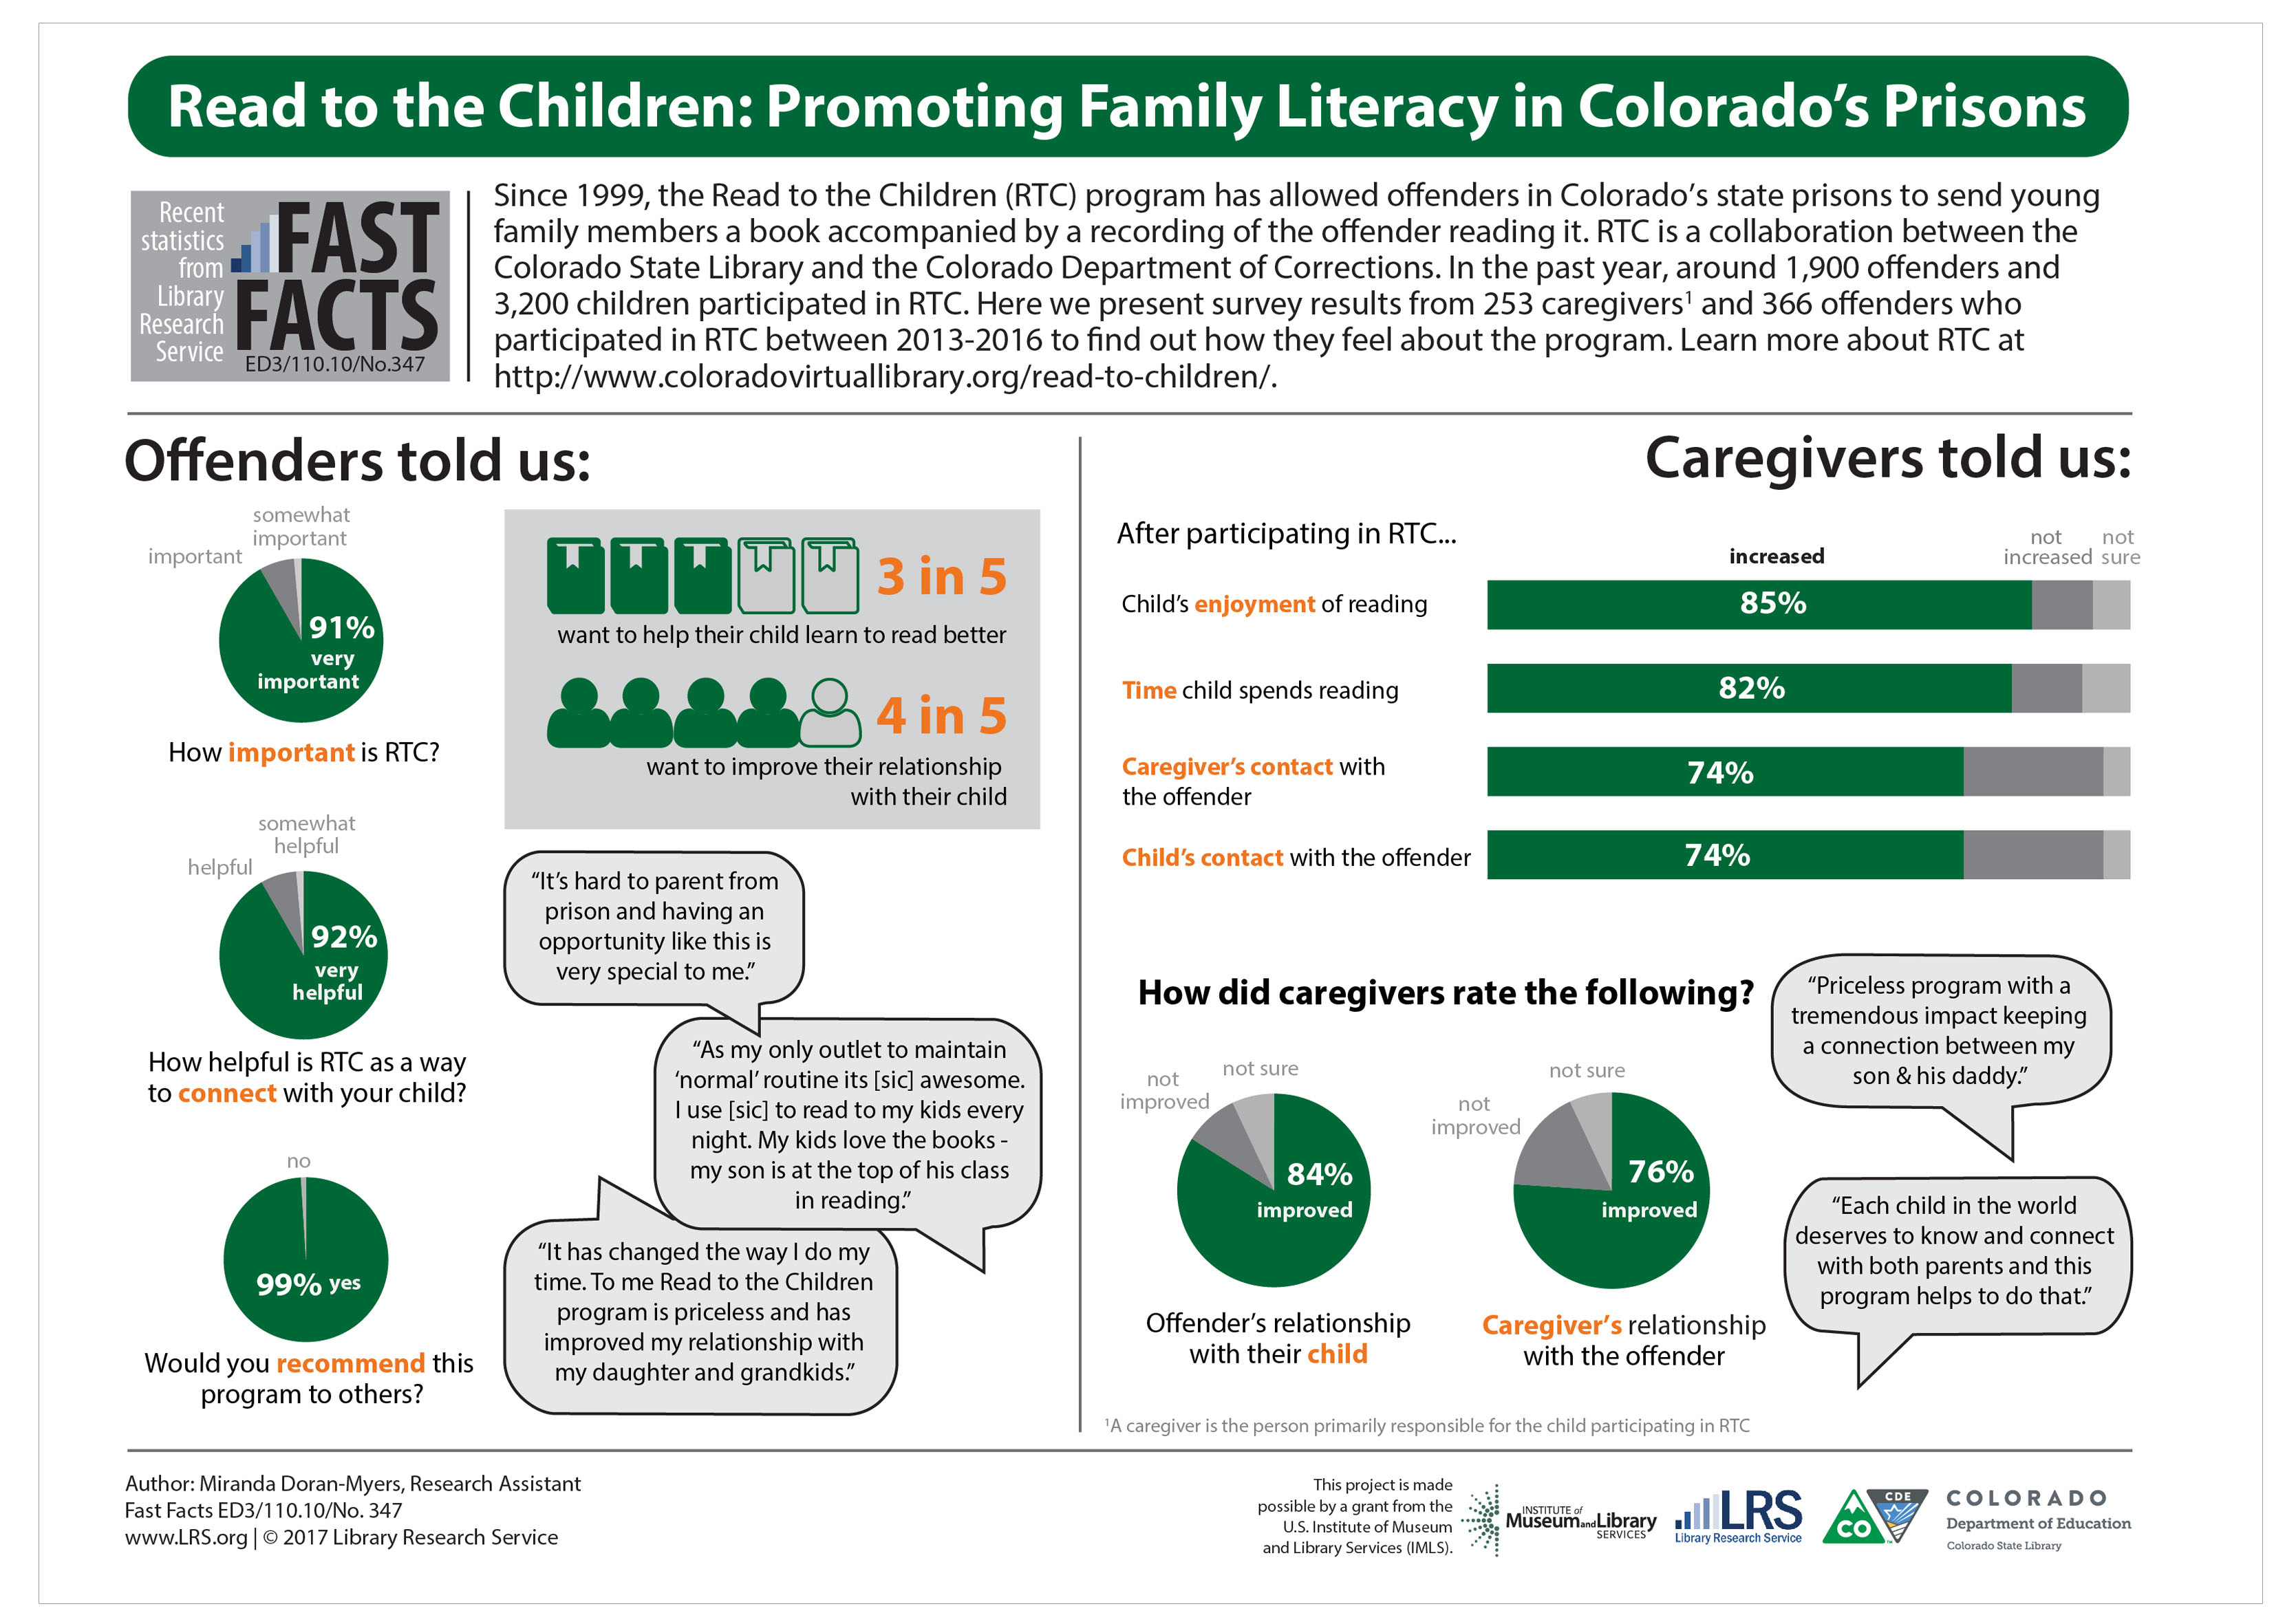 Read to the Children: Promoting Family Literacy in Colorado's Prisons